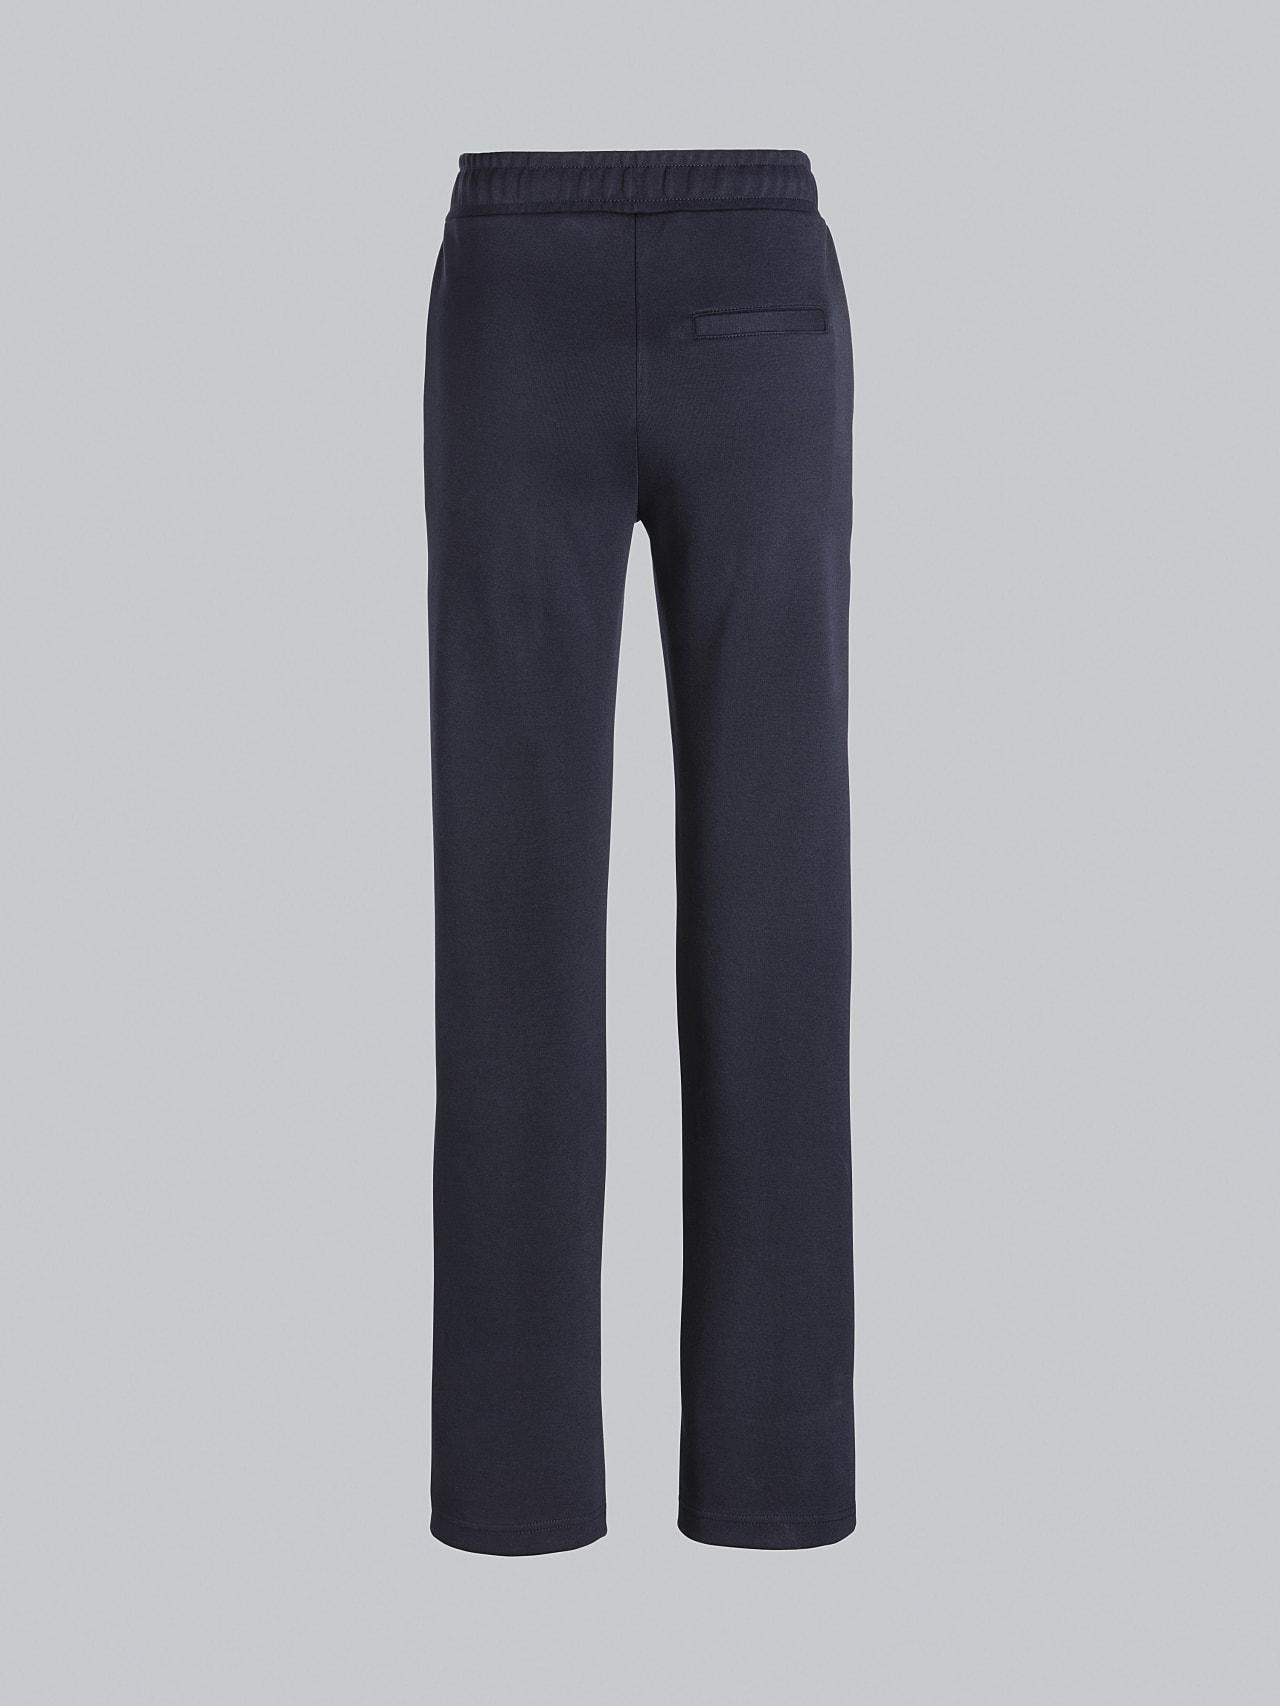 POVOA V1.Y5.02 Relaxed-Fit Premium Sweat Pants navy Left Alpha Tauri